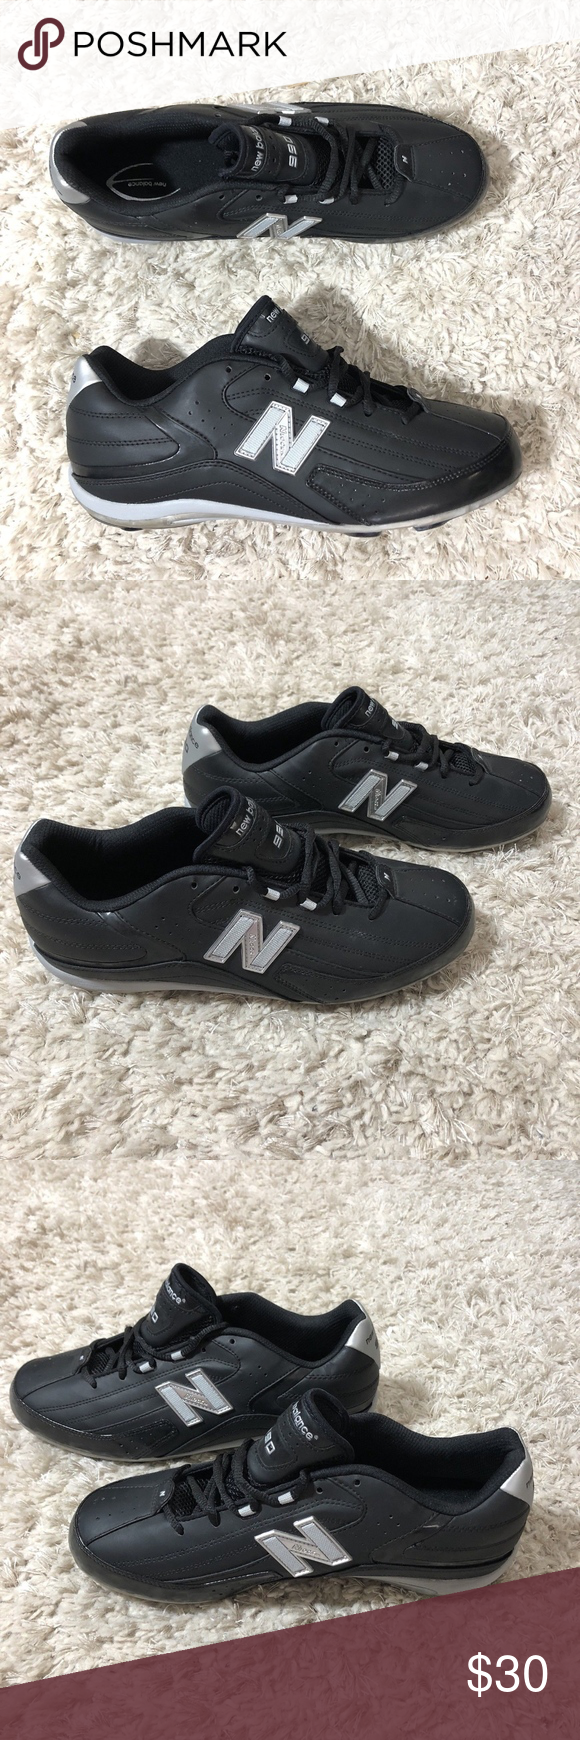 c3a2d090e2e96 New Balance 990 Men Size 11 Football Cleats Black New Balance 990 black and  silver foot ball cleats cleats & cleat tool are in bag; black laces; ...